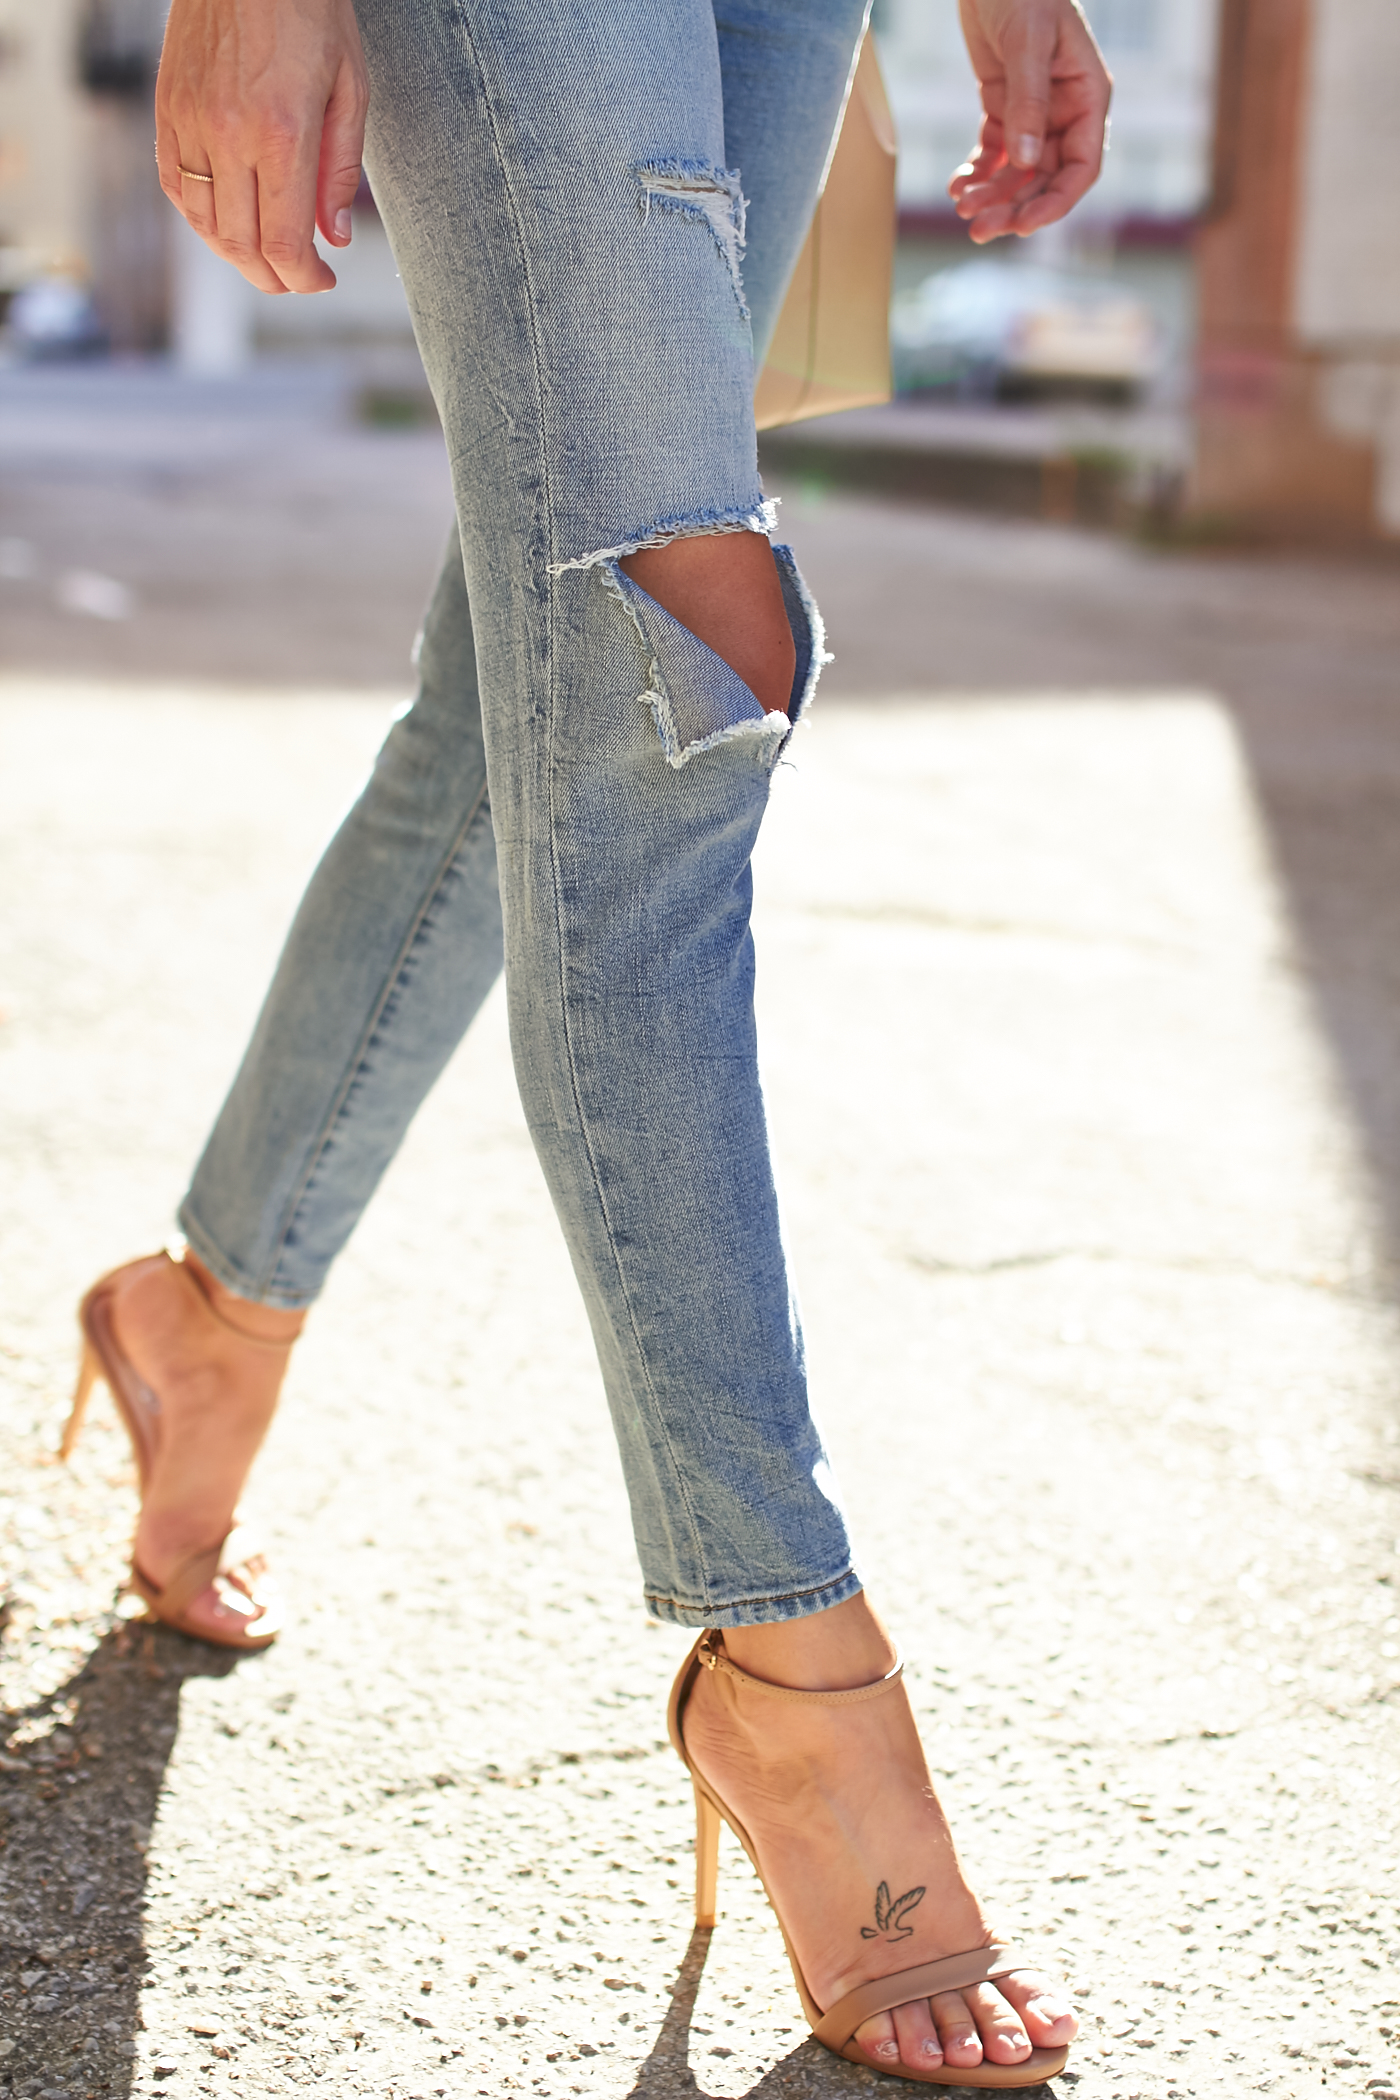 fashion-jackson-blanknyc-distressed-skinny-jeans-nordstrom-anniversary-sale-nude-ankle-strap-heels